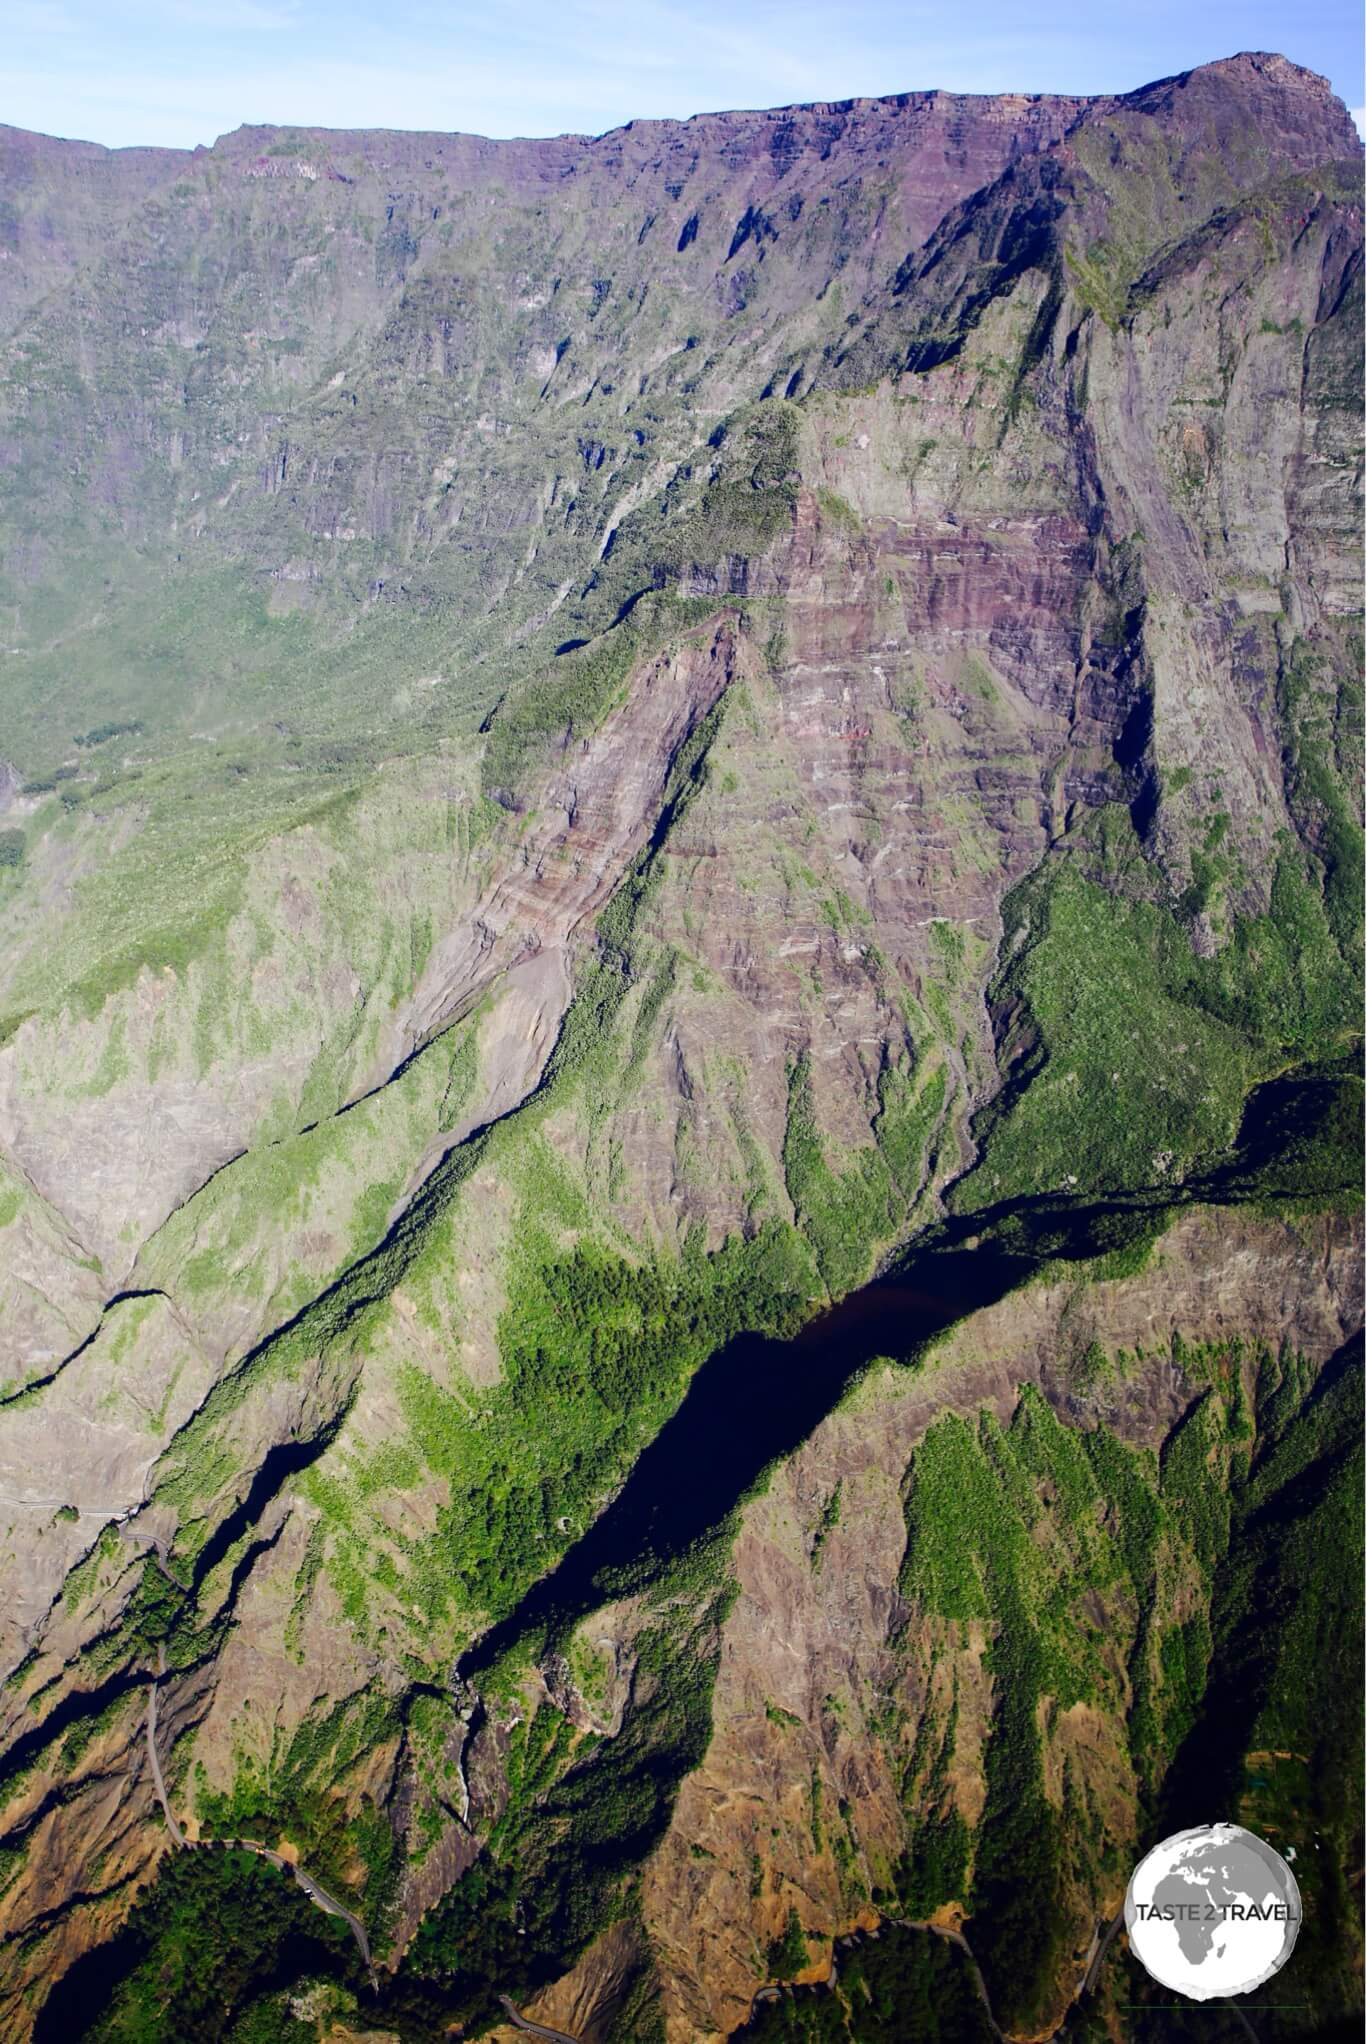 As seen from a helicopter, the narrow, windy road (bottom left corner) which passes beneath the vertical walls of the Cirque de Cilaos, providing access to the tiny hamlet of Îlet à Cordes.